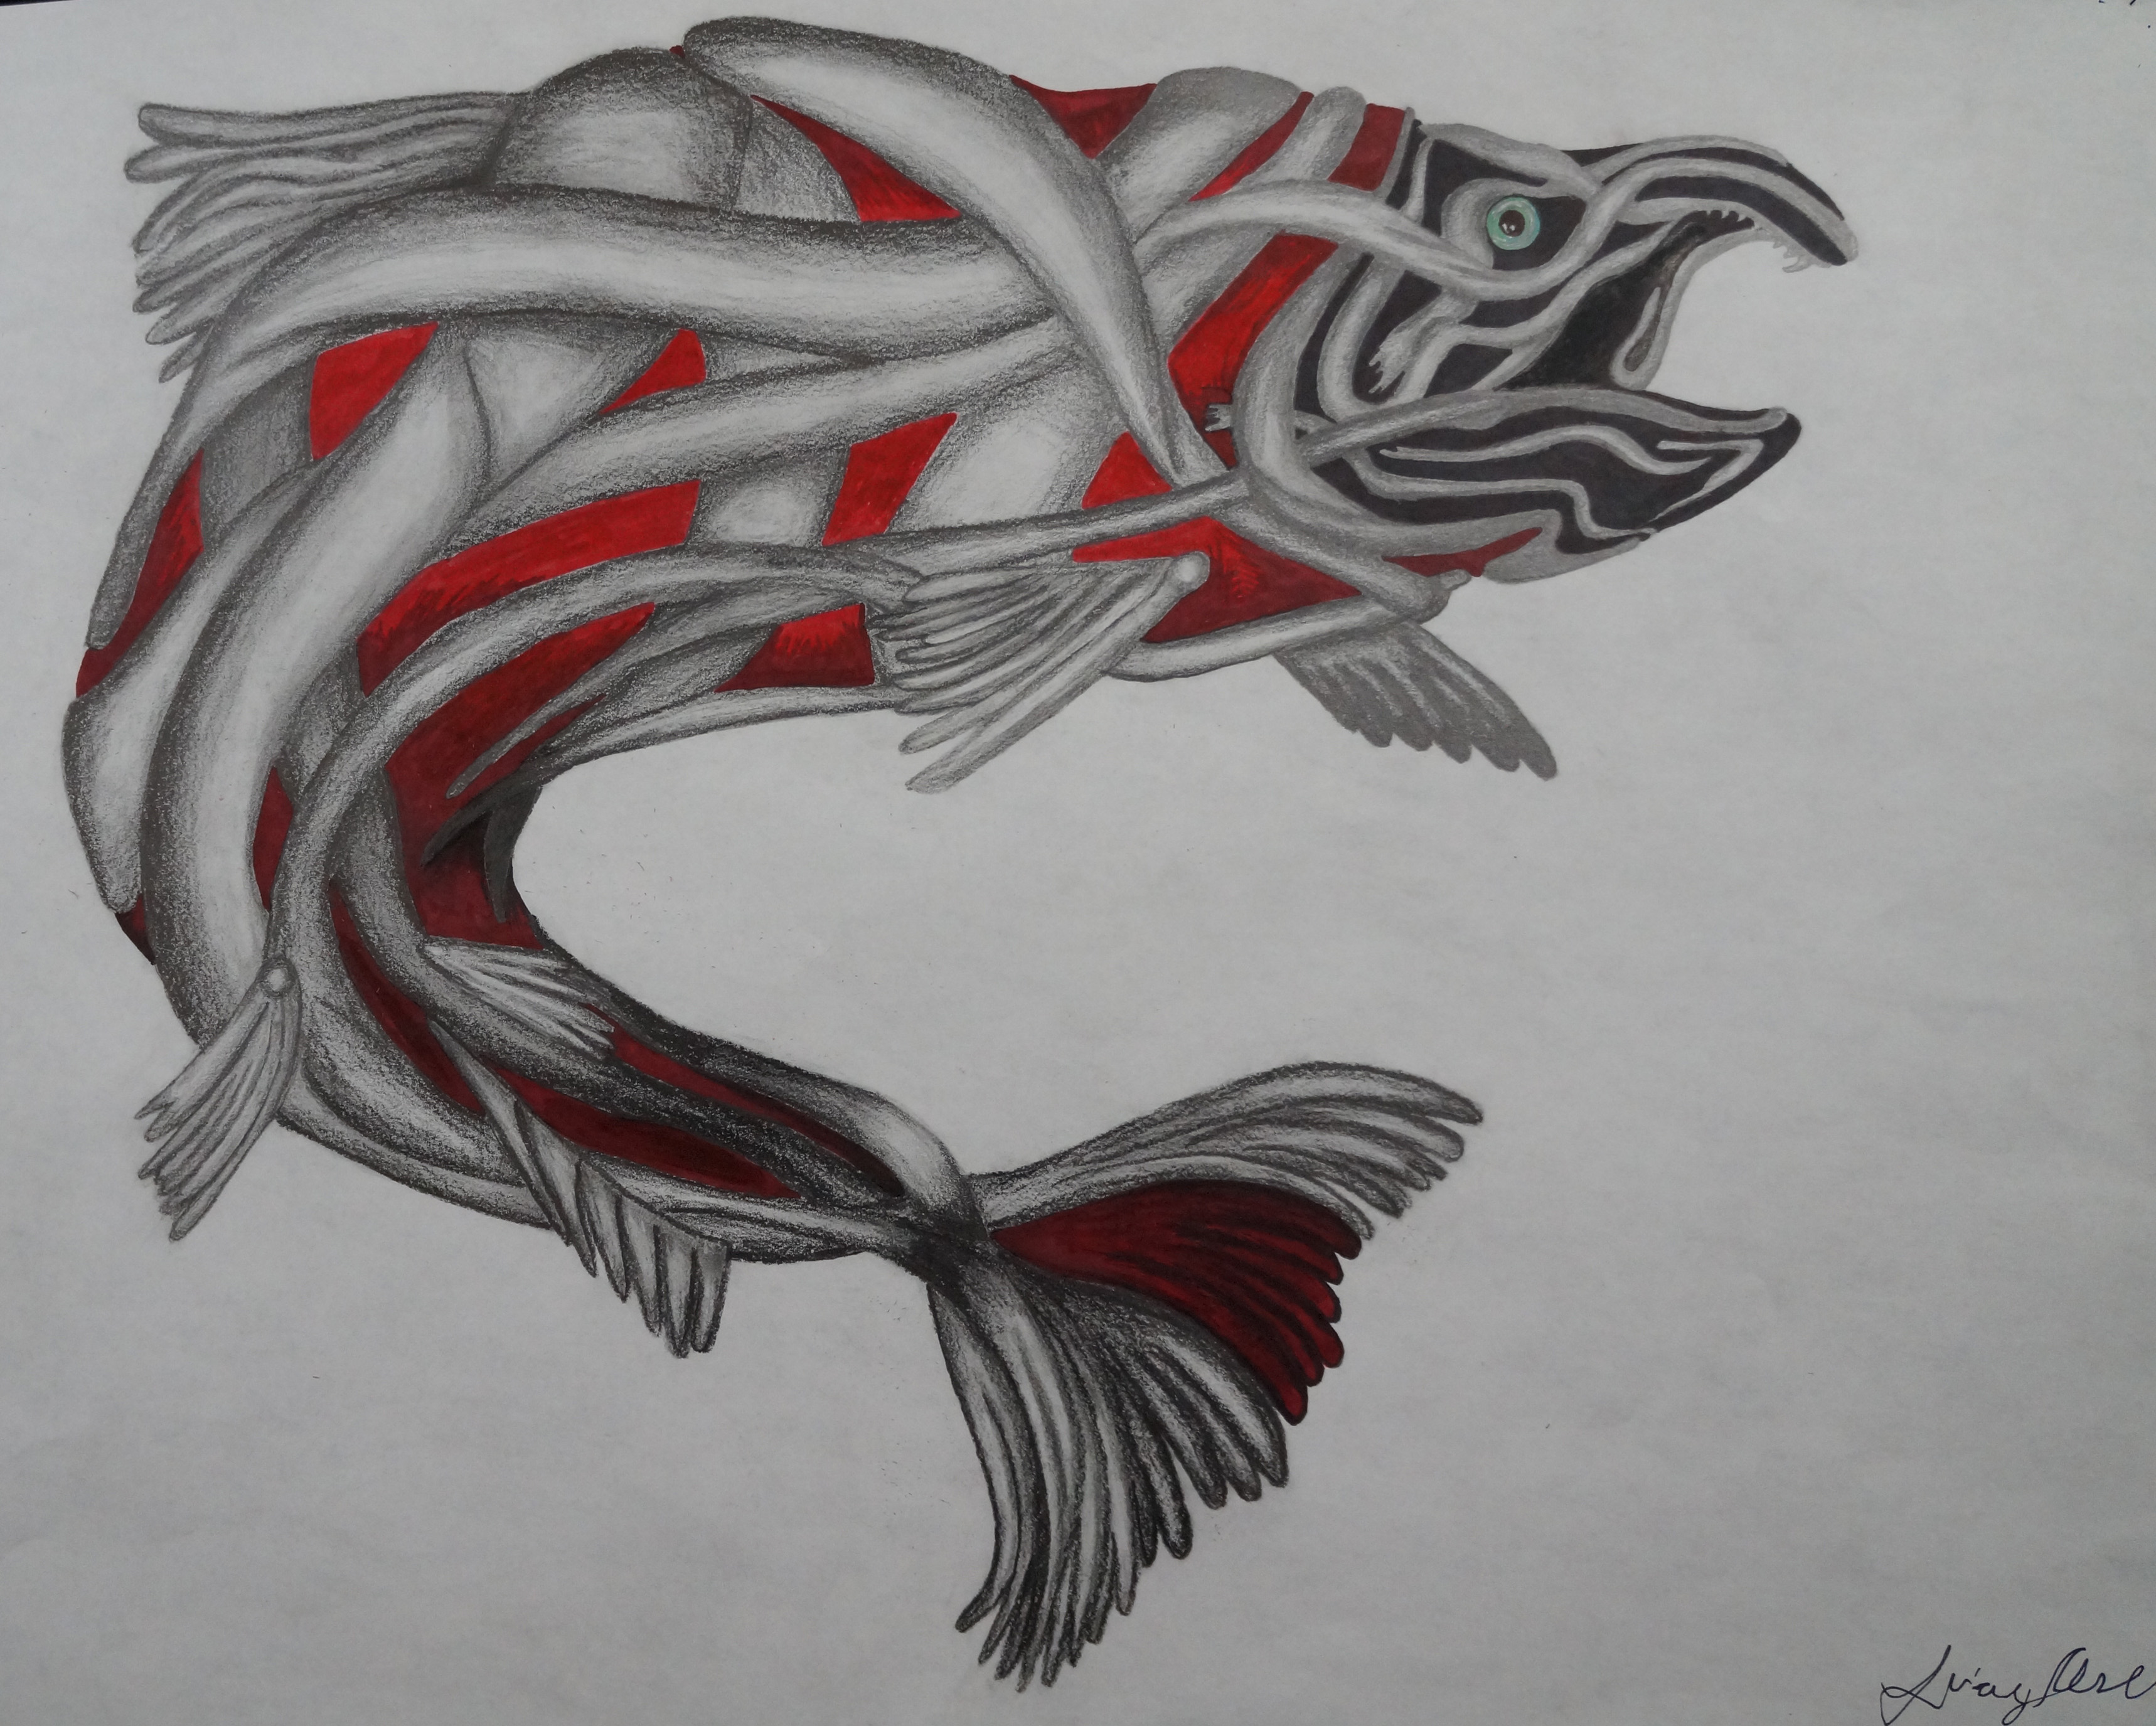 T'a' (Salmon in Tlingit)